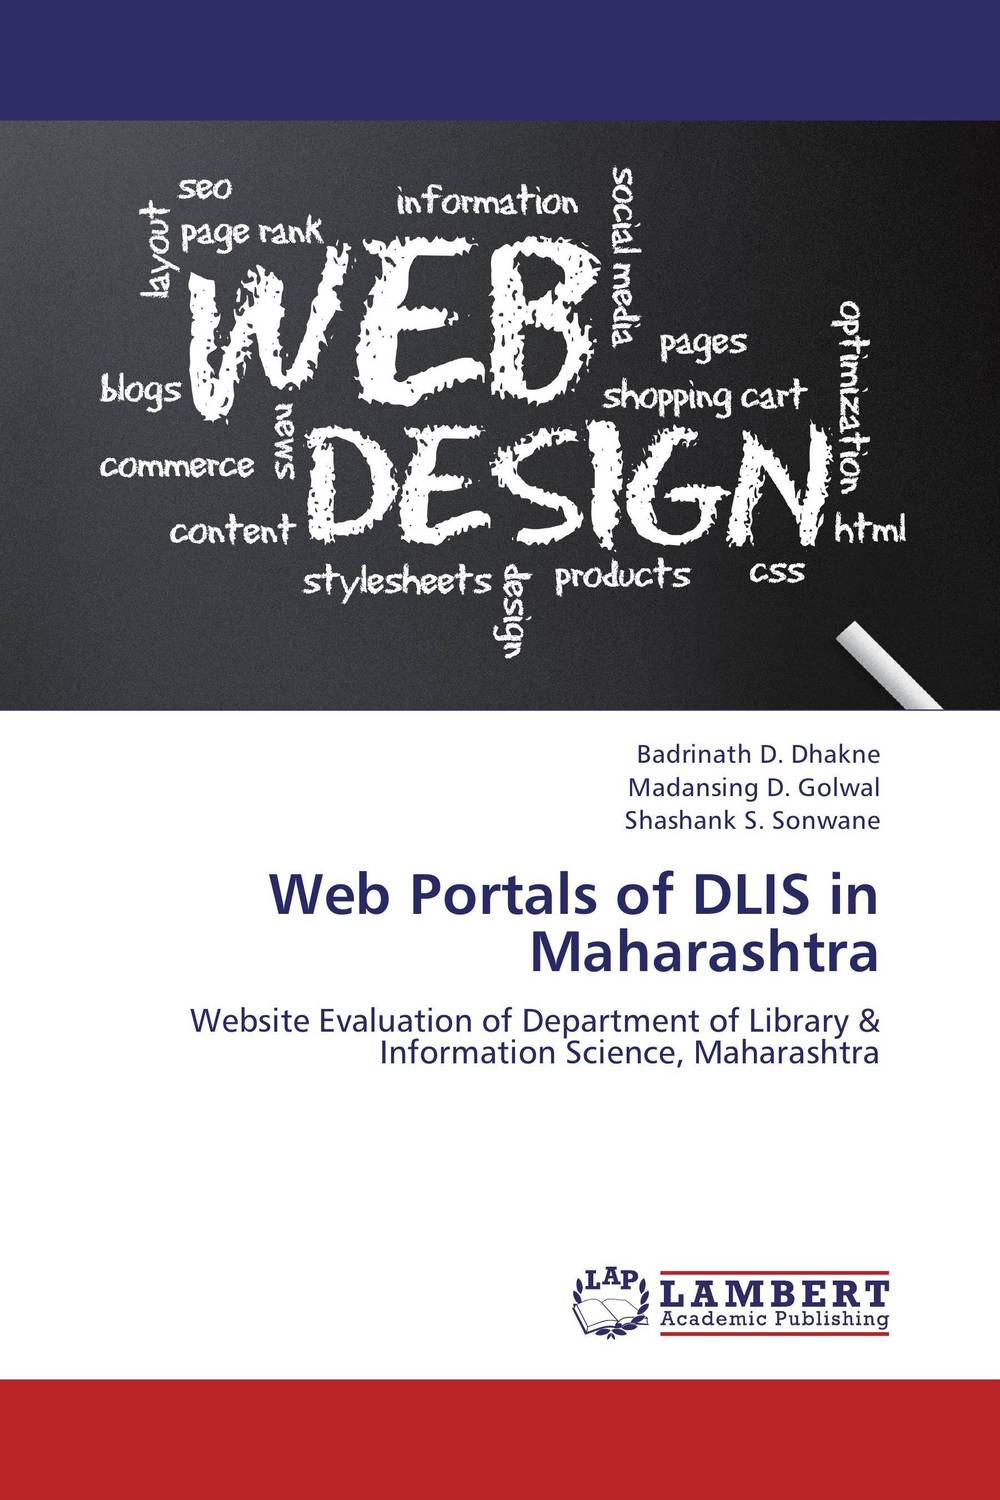 Web Portals of DLIS in Maharashtra avinash kaushik web analytics 2 0 the art of online accountability and science of customer centricity